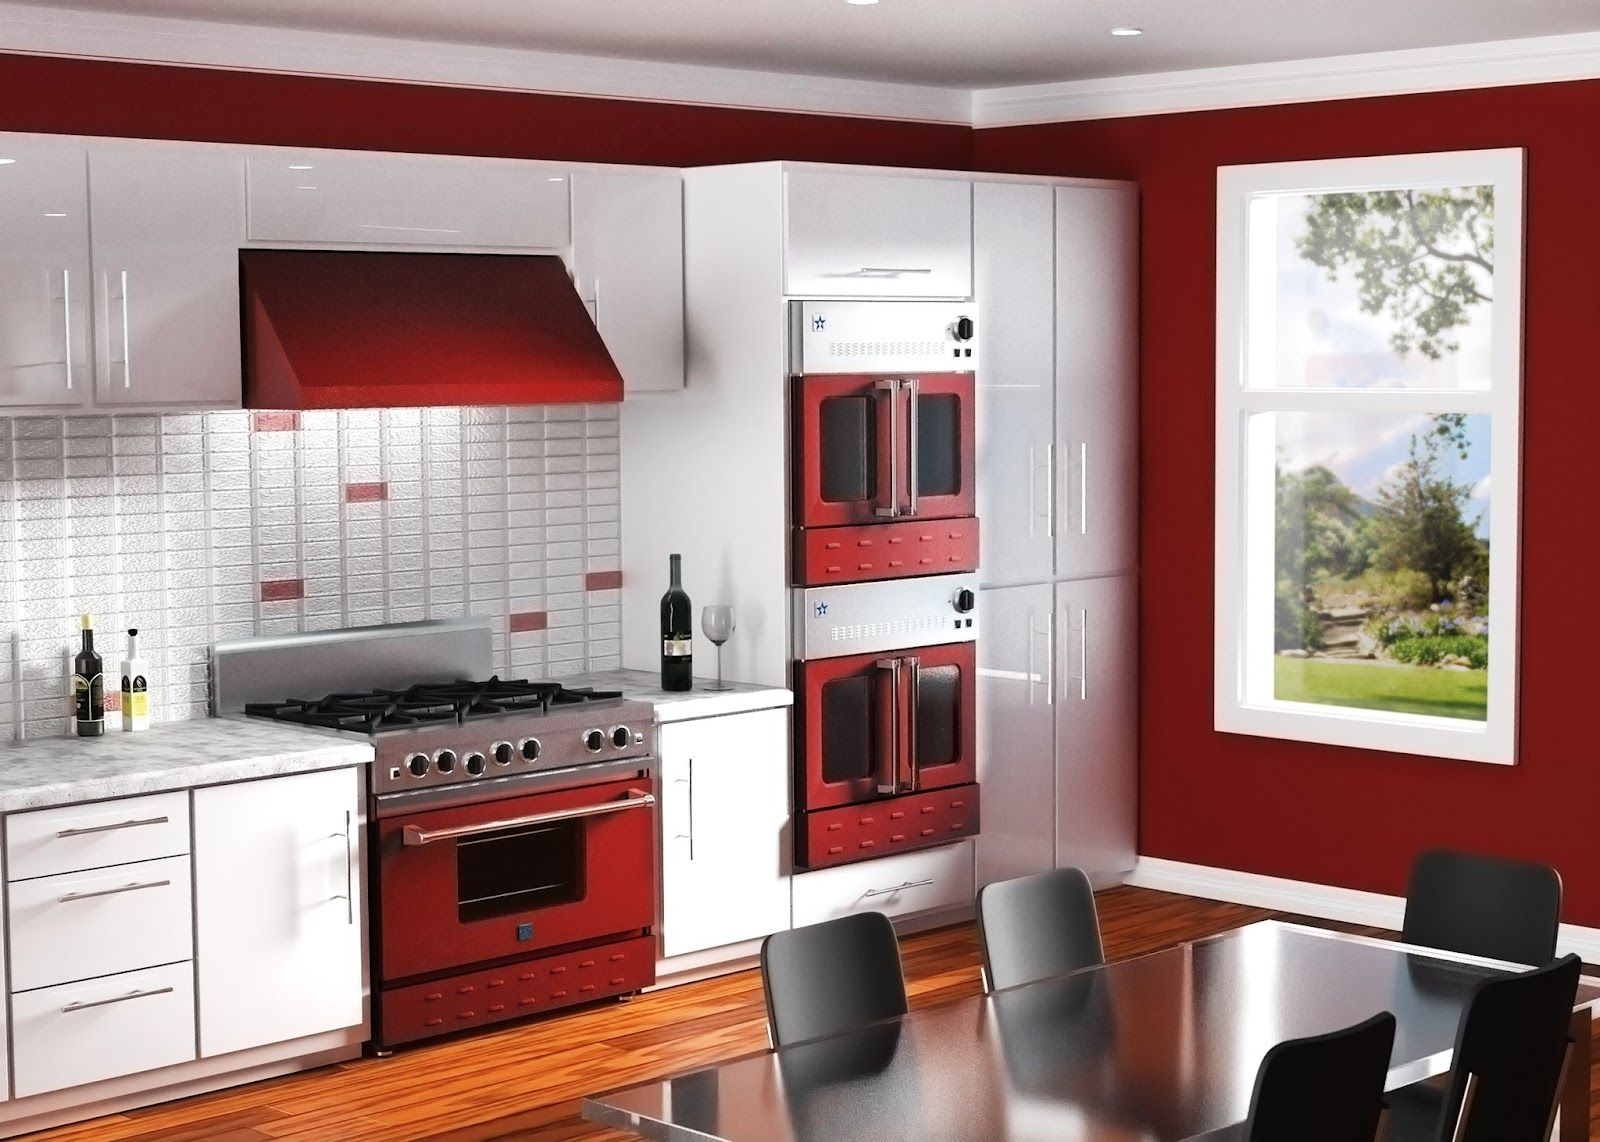 Uncategorized Kitchens With Red Appliances custom bluestar appliances in wine red cooking with color red